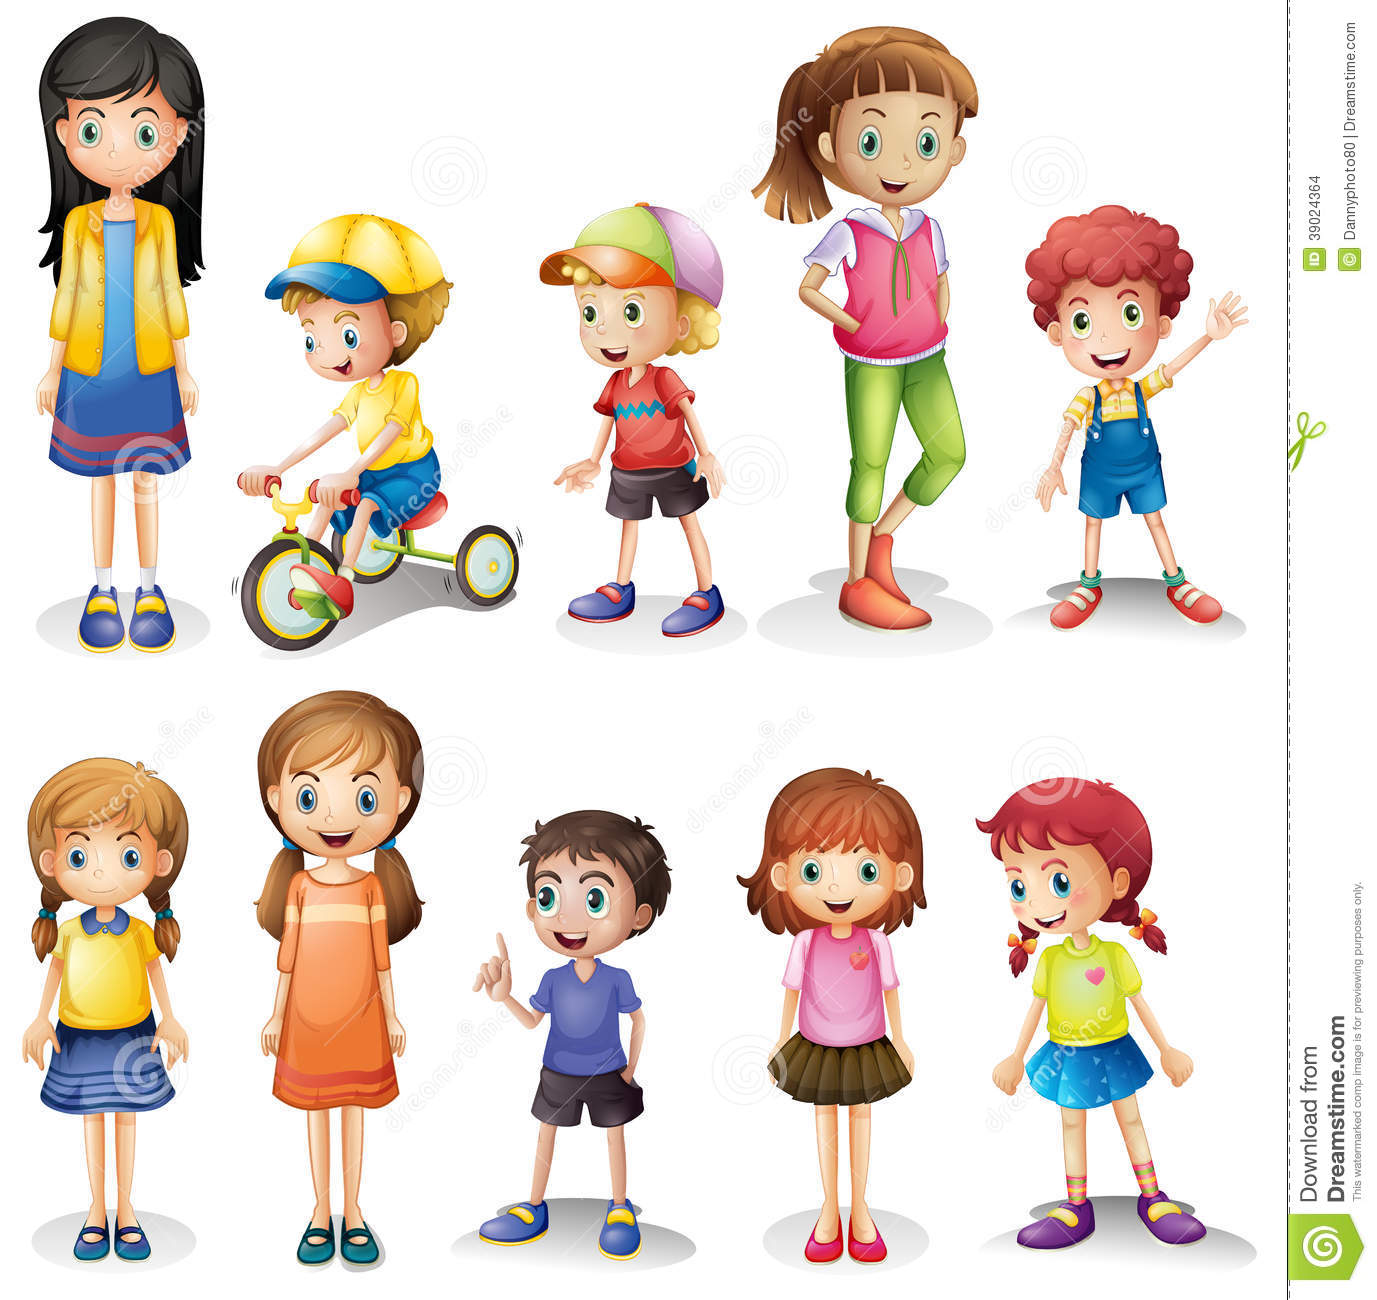 Sister Clipart | Clipart Panda - Free Clipart Images